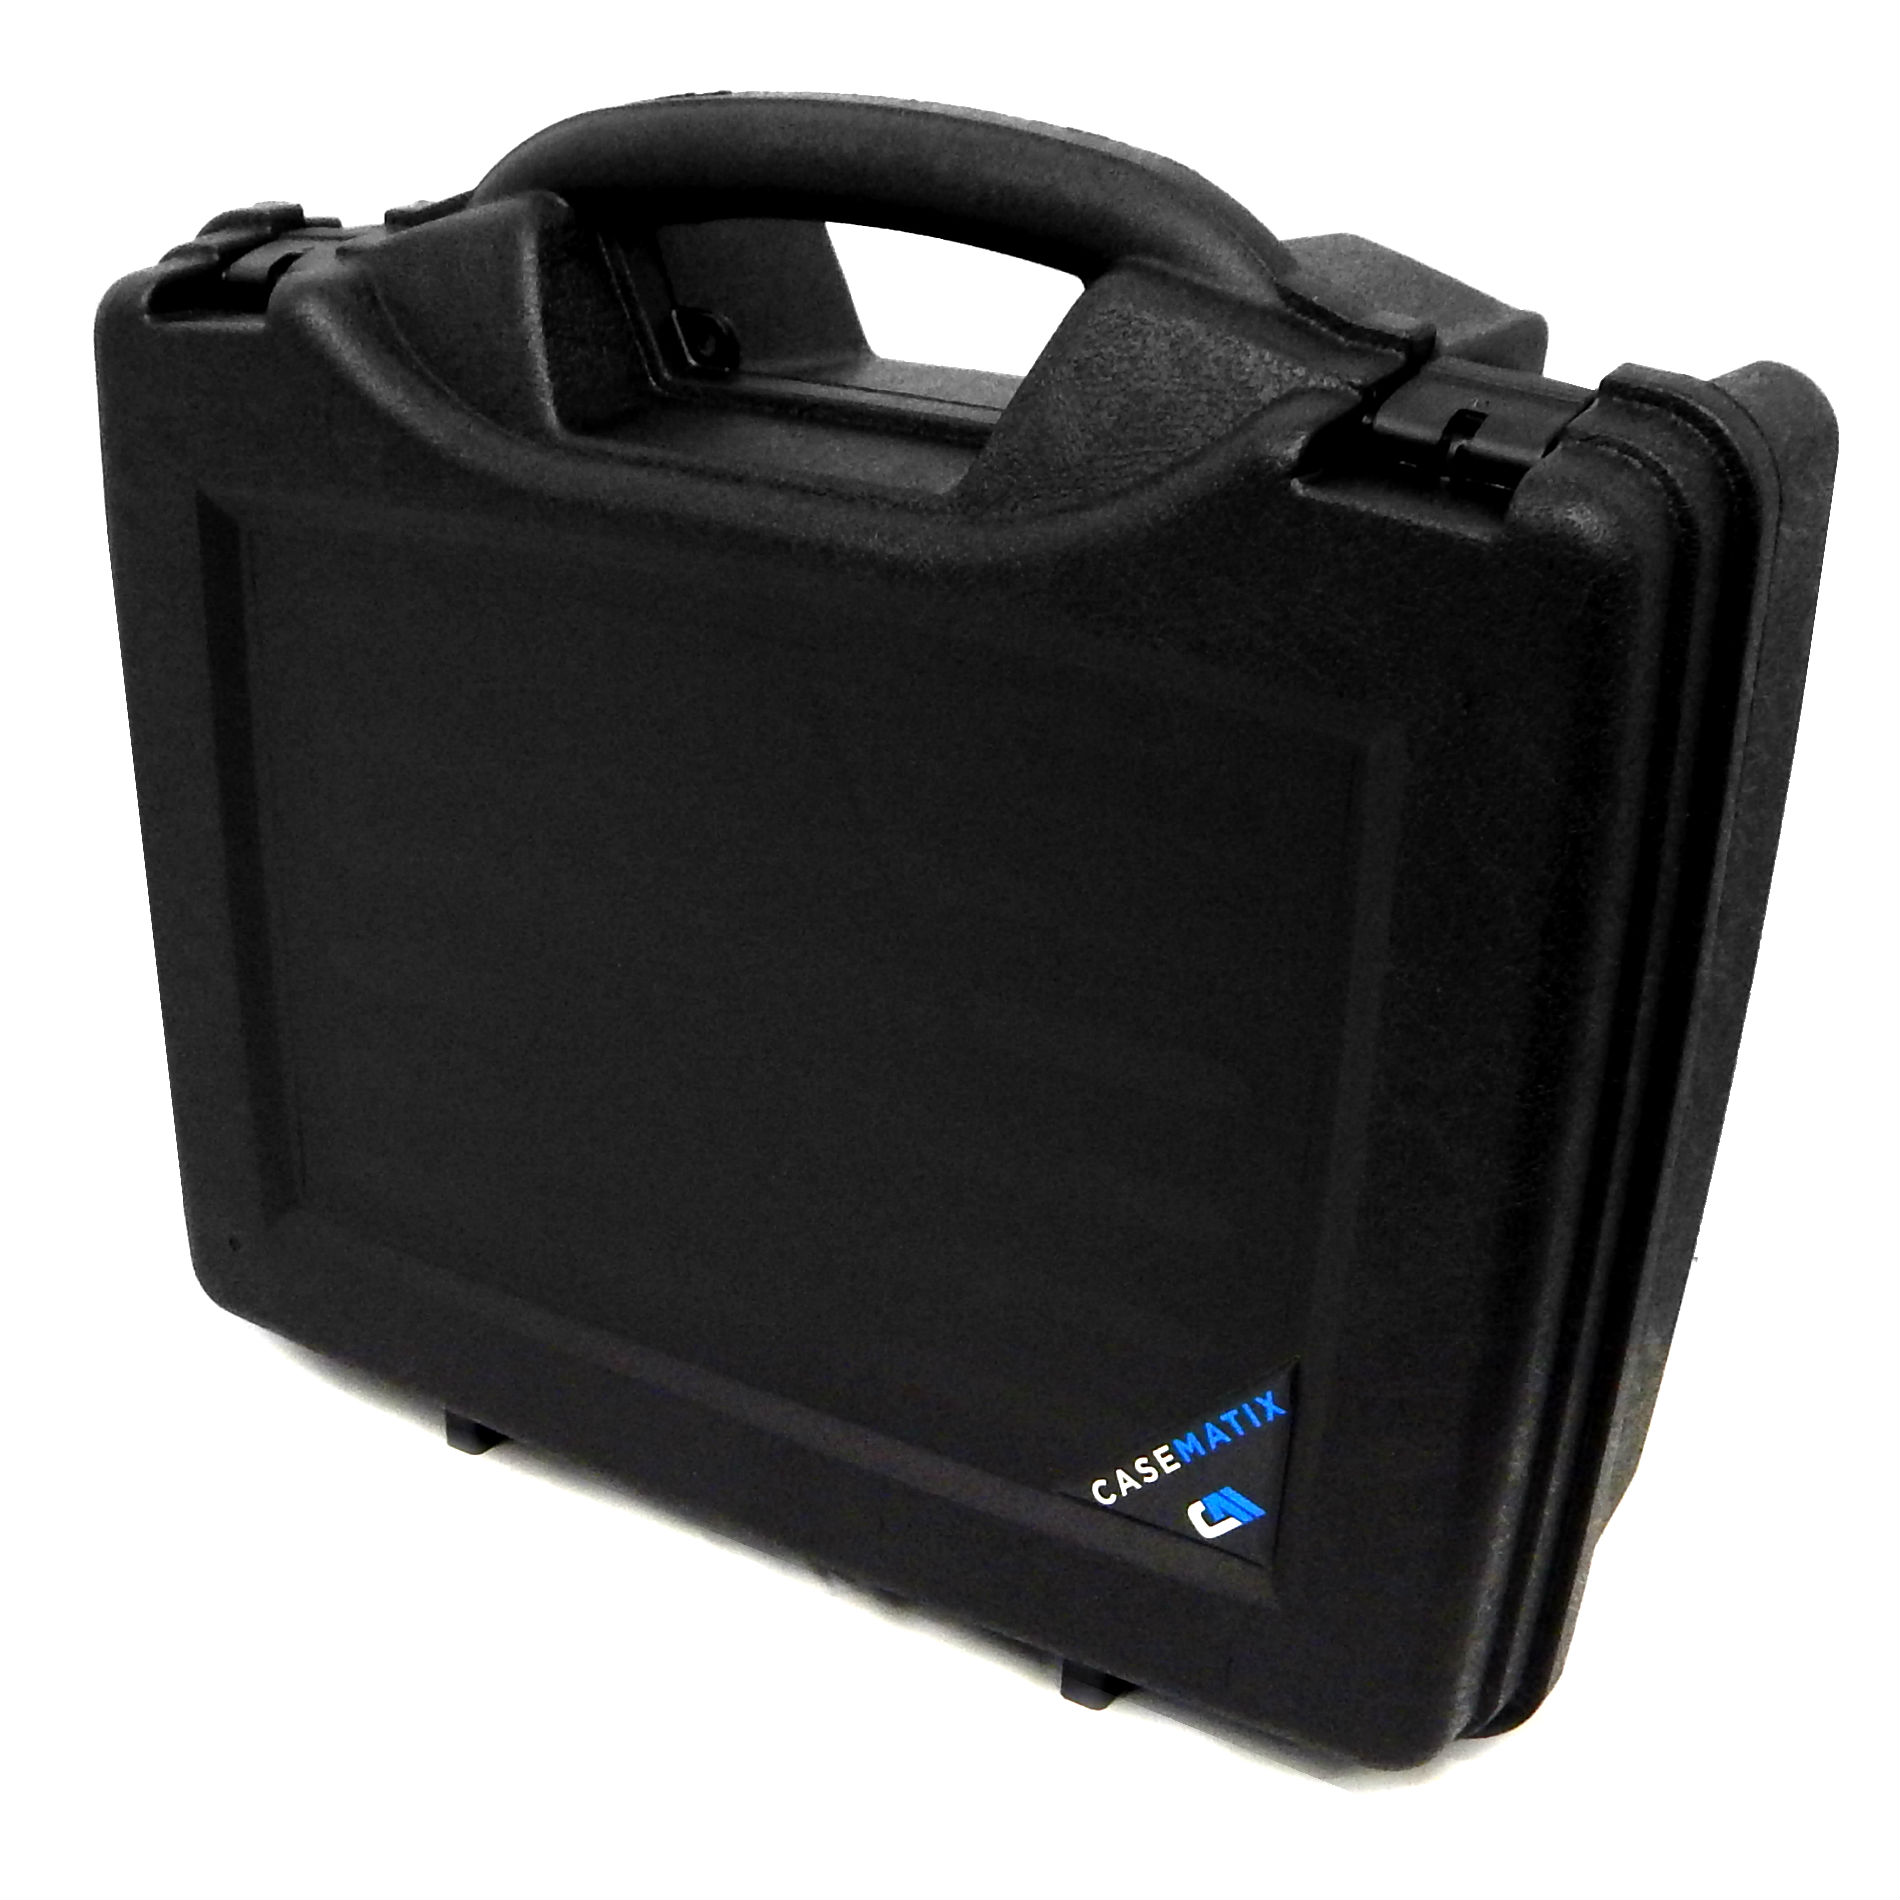 Fits Pyle STUDIOCASE Wireless Microphone System Hard Case w// Customizable Foam